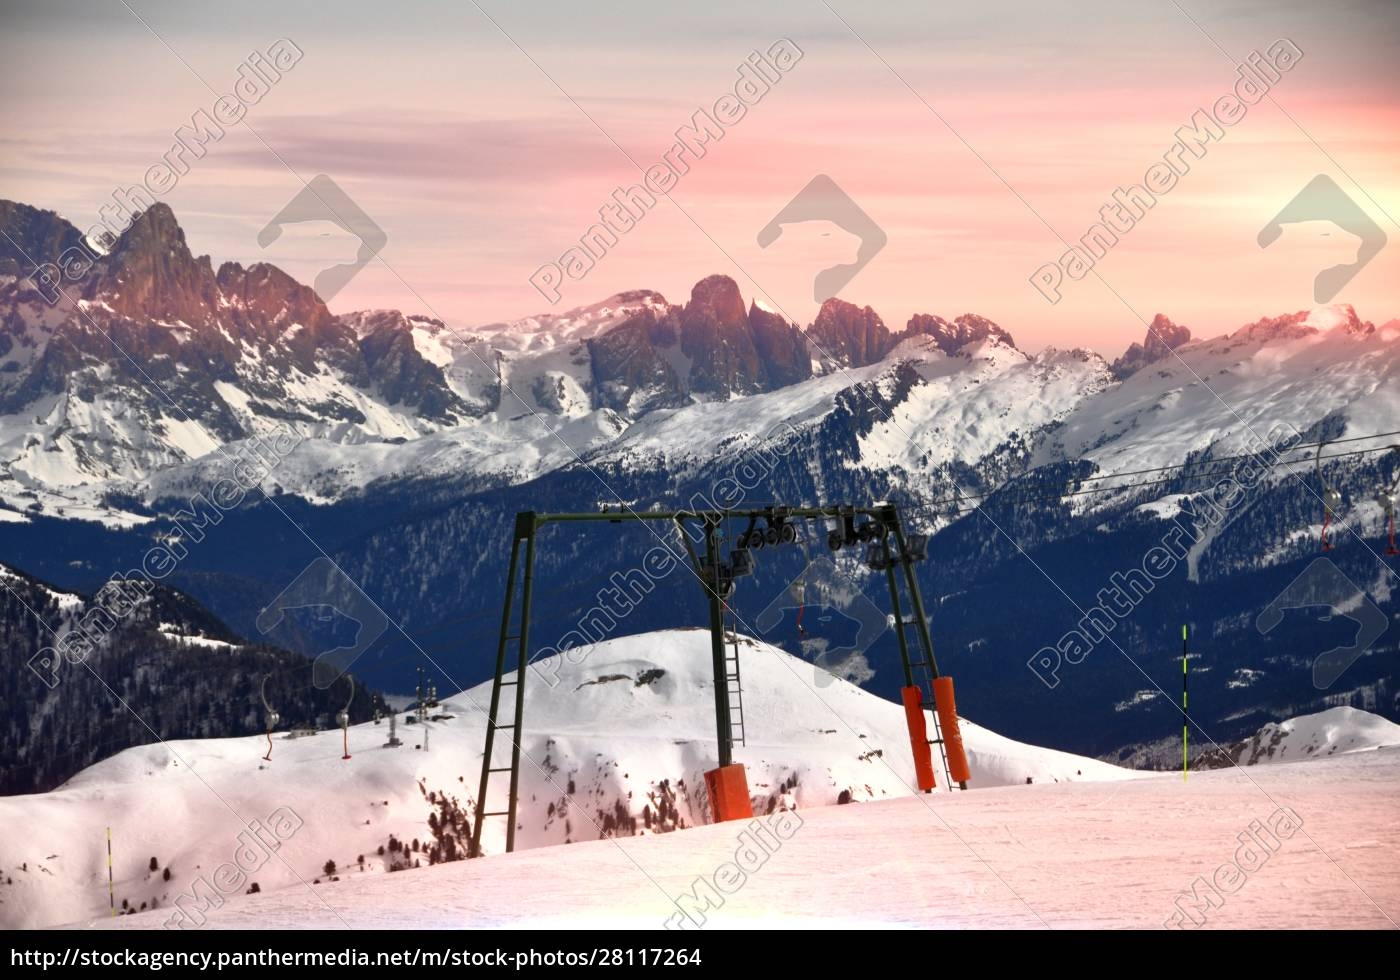 skiing, insouthern, tyrol - 28117264